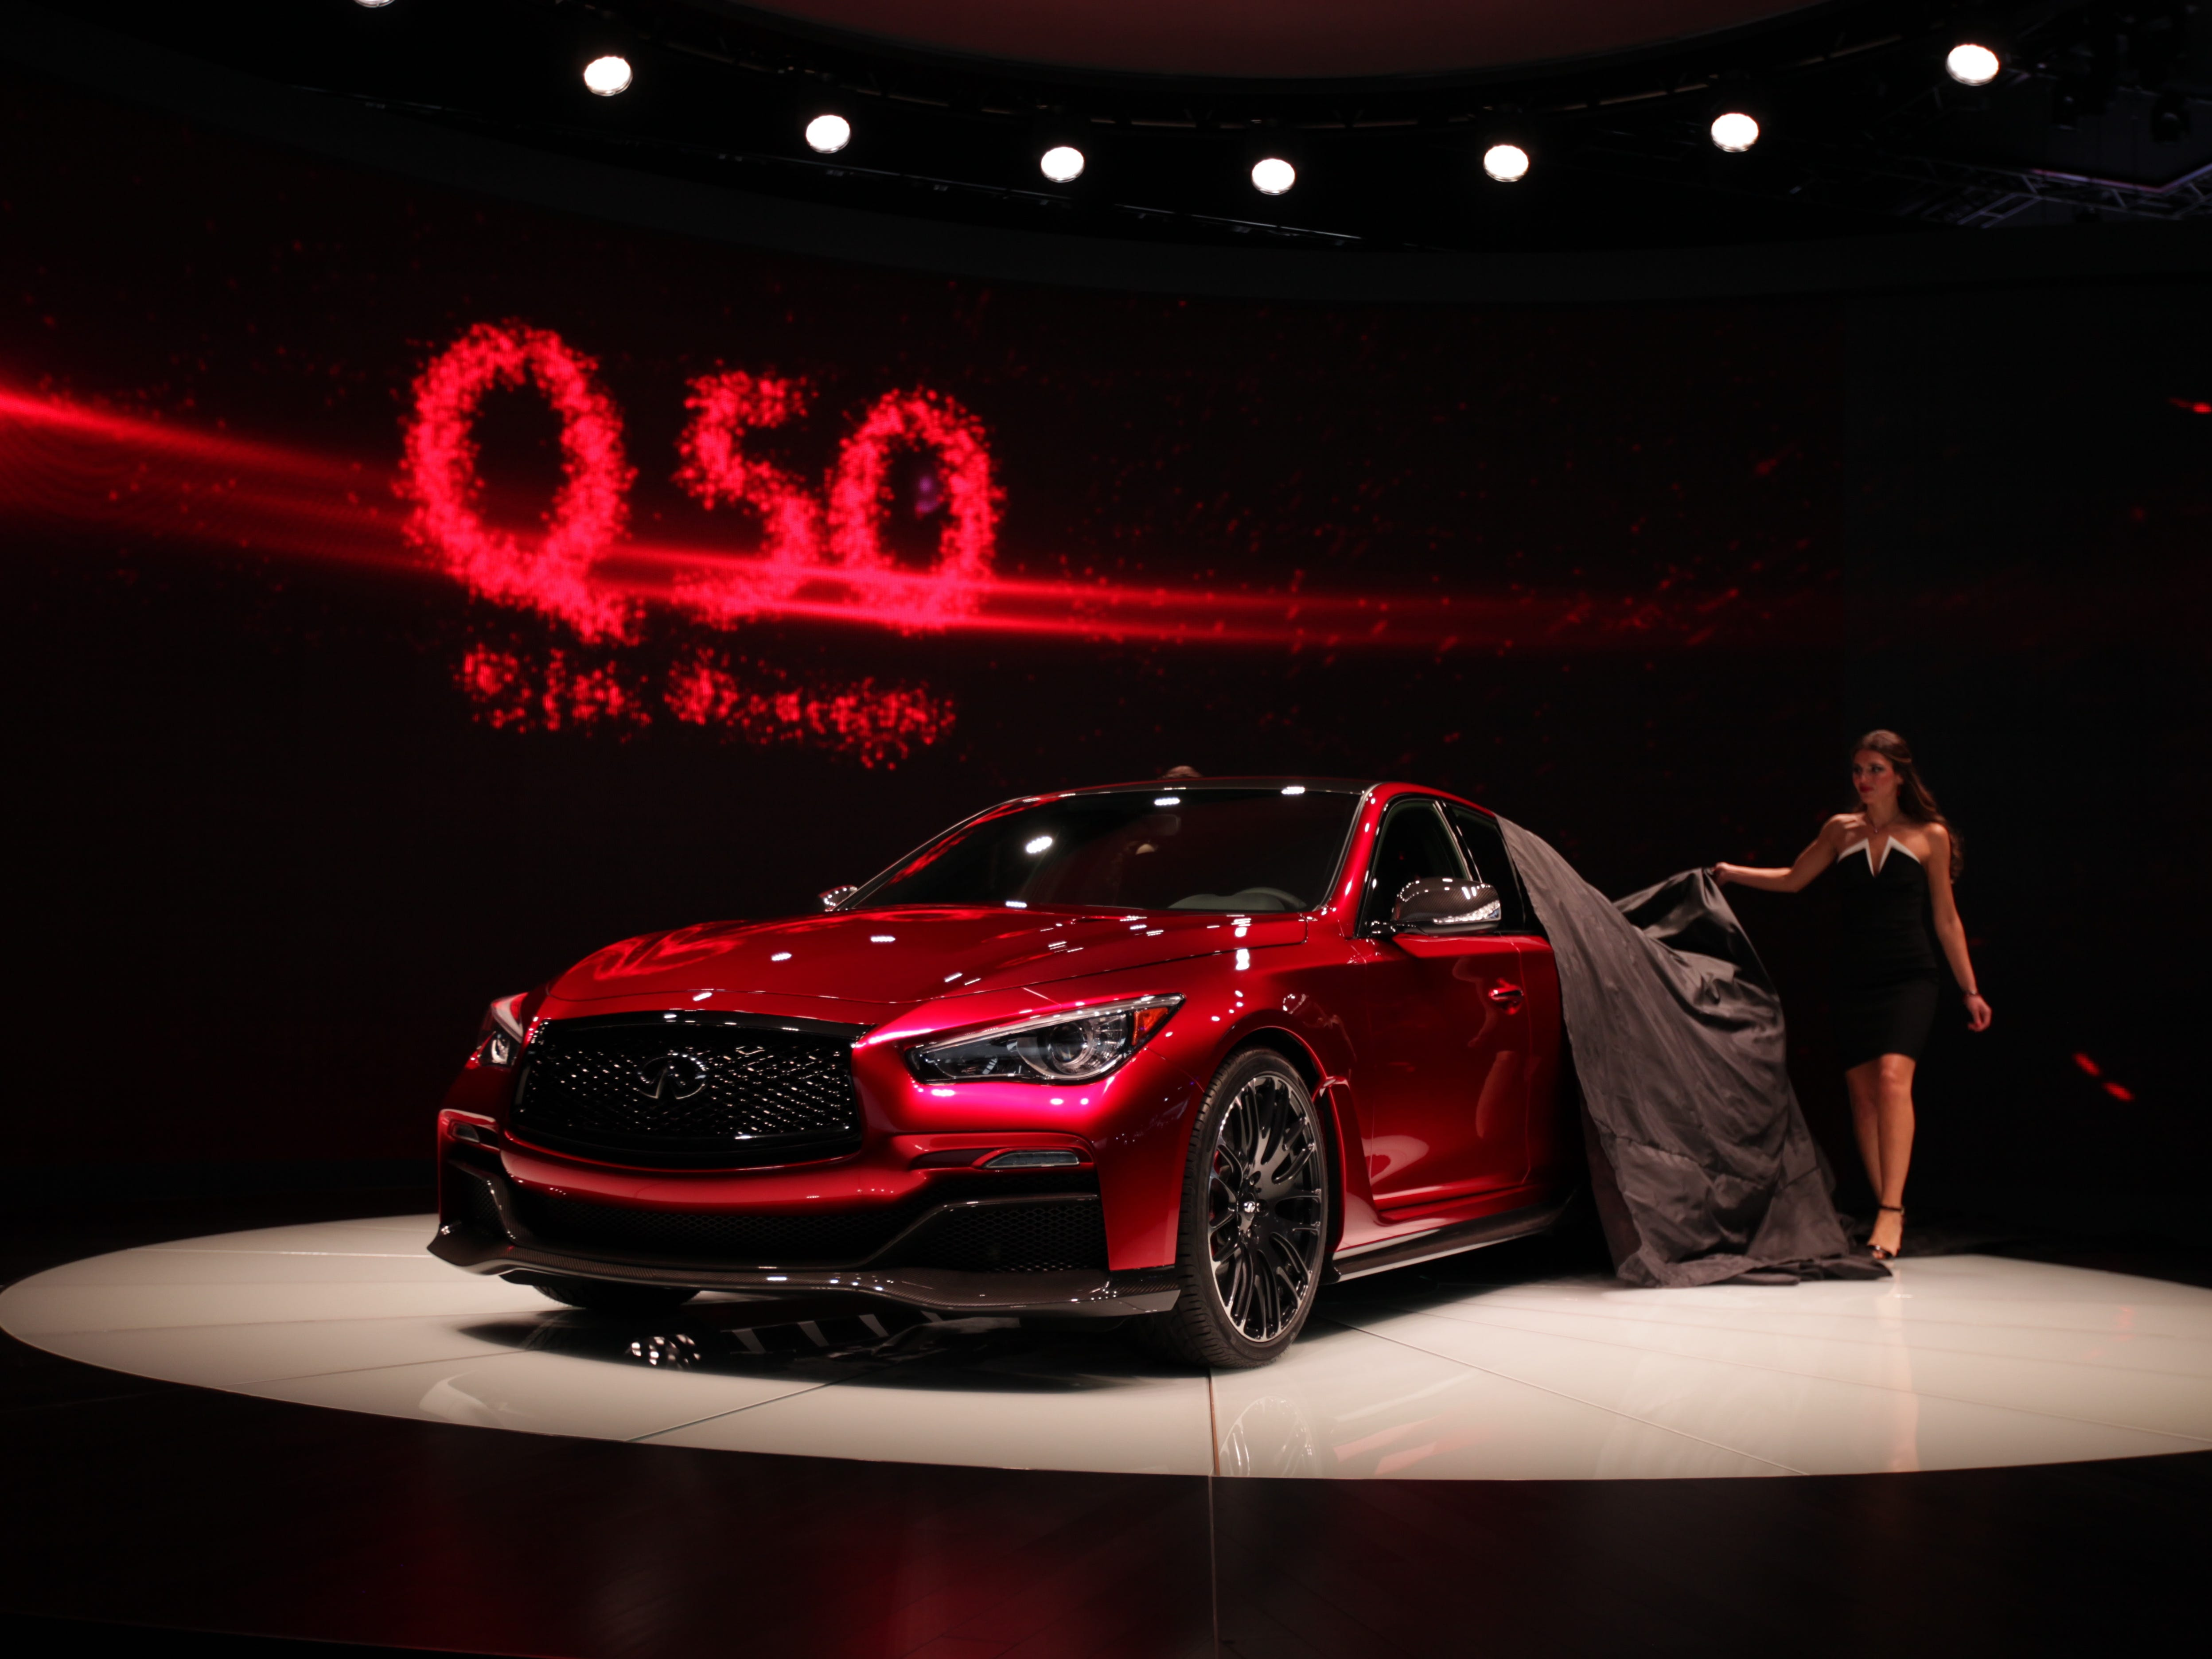 The Infiniti Q50 Eau Rouge concept vehicle was revealed to the media during the 2014 North American International Auto Show held at Cobo Center in downtown Detroit on Tuesday, Jan. 14, 2014.